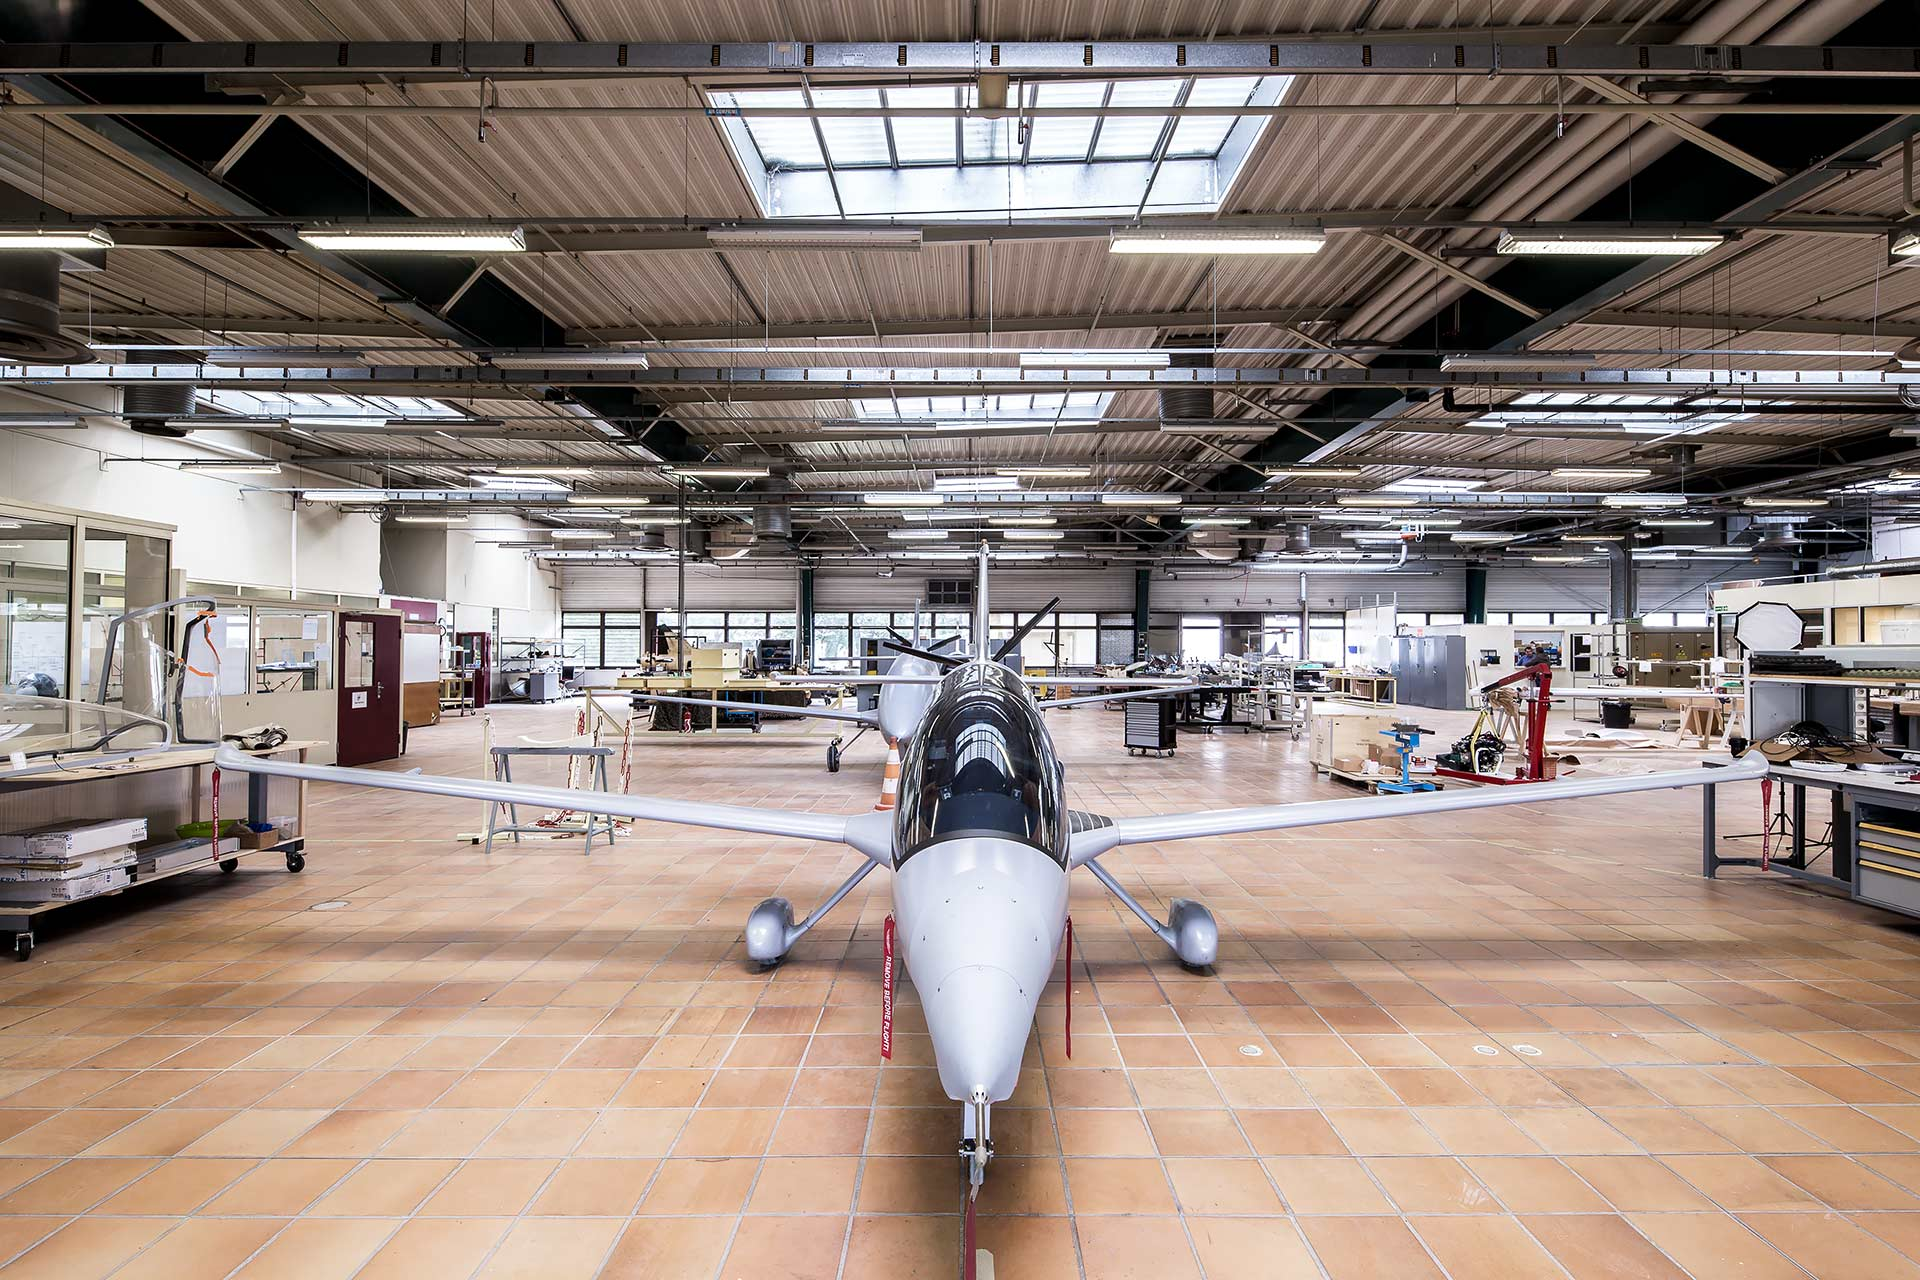 rebirth of the Villaroche flight test center